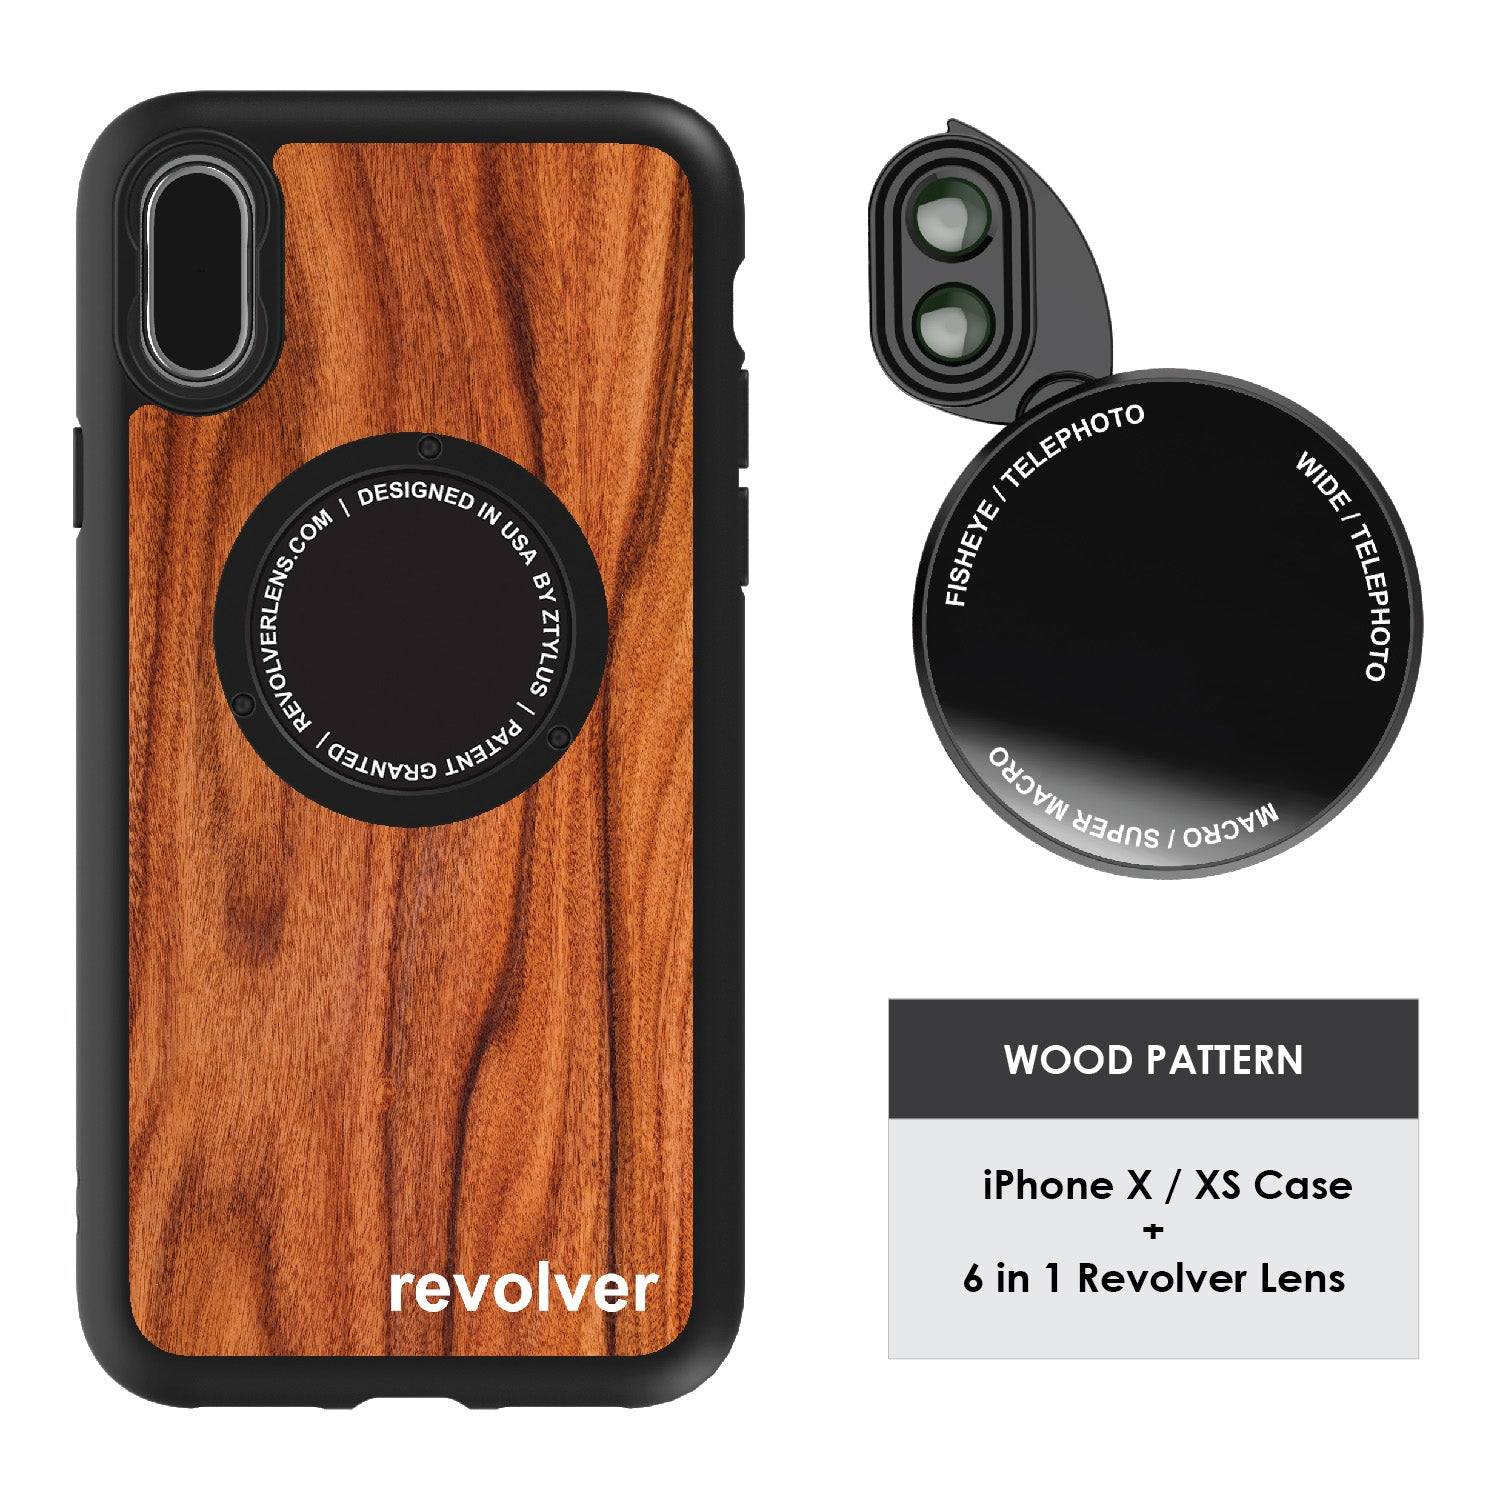 iPhone X / XS Revolver M Series Lens Kit - Wood Pattern